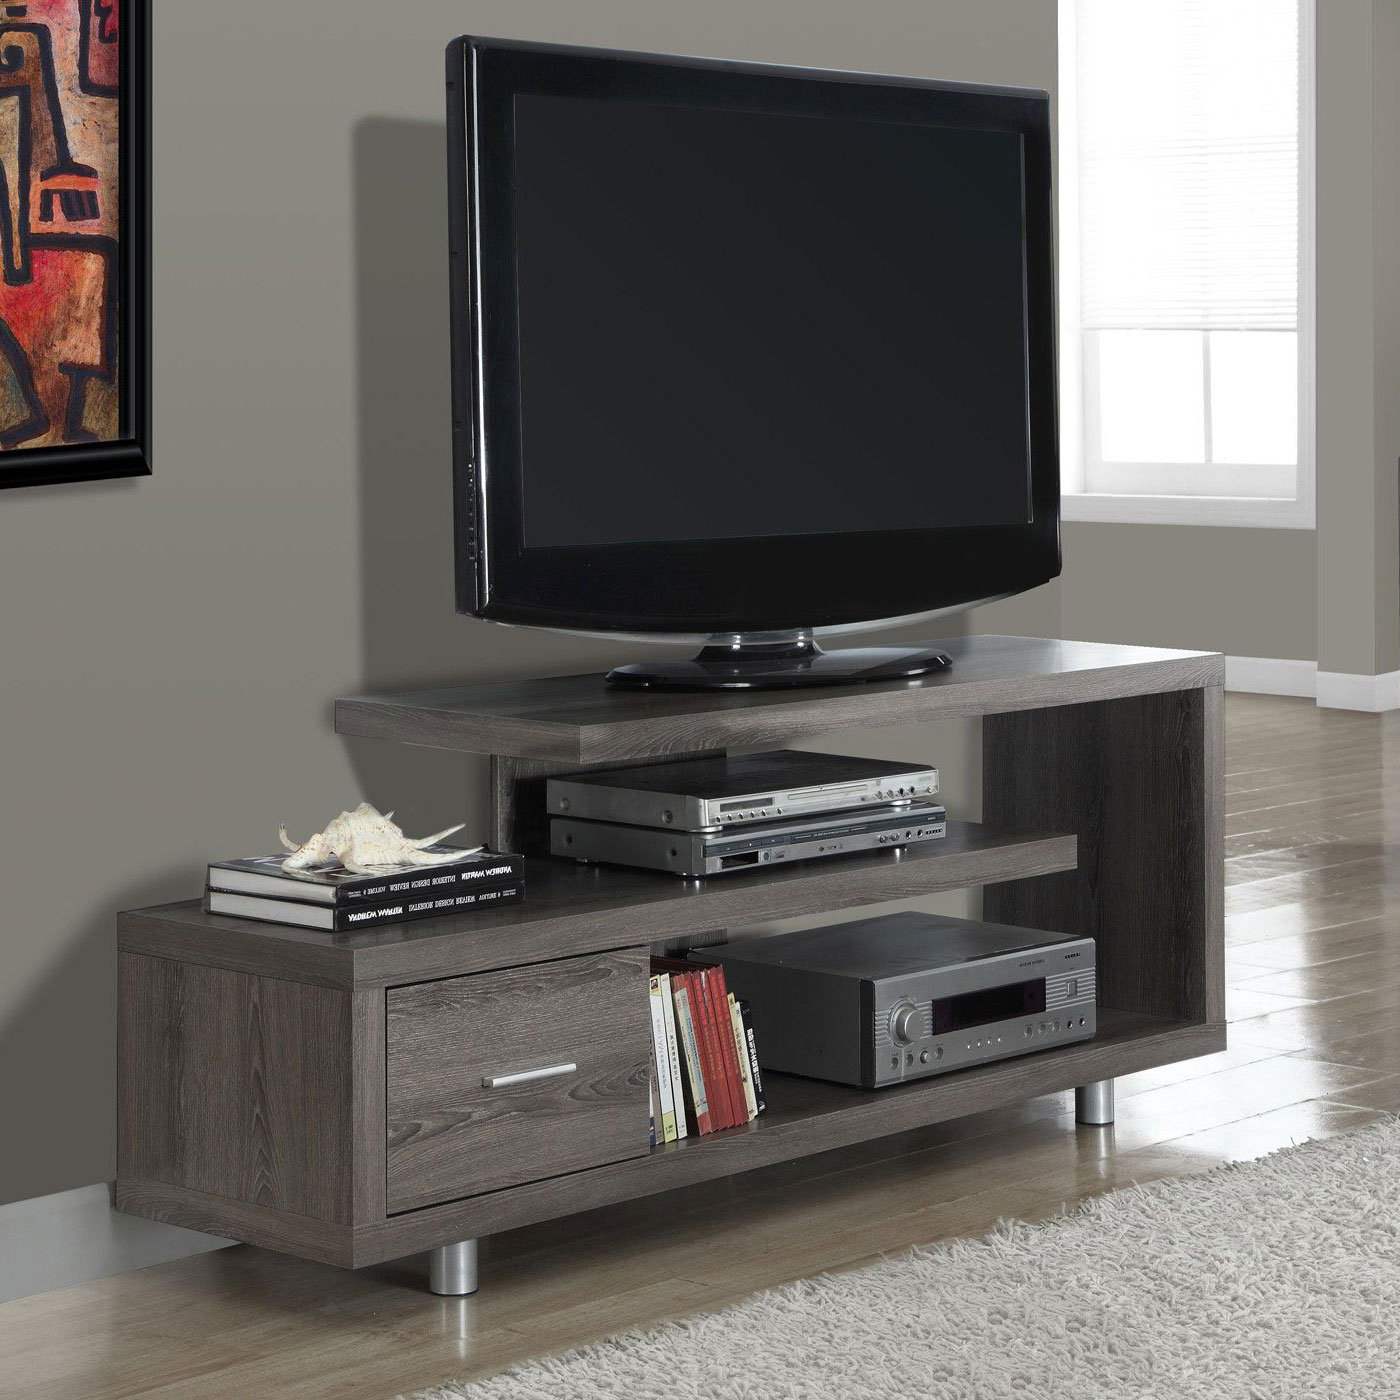 "Well Known Monarch Tv Stand White With 1 Drawer For Tvs Up To 47""l – Walmart Regarding Maddy 50 Inch Tv Stands (View 19 of 20)"